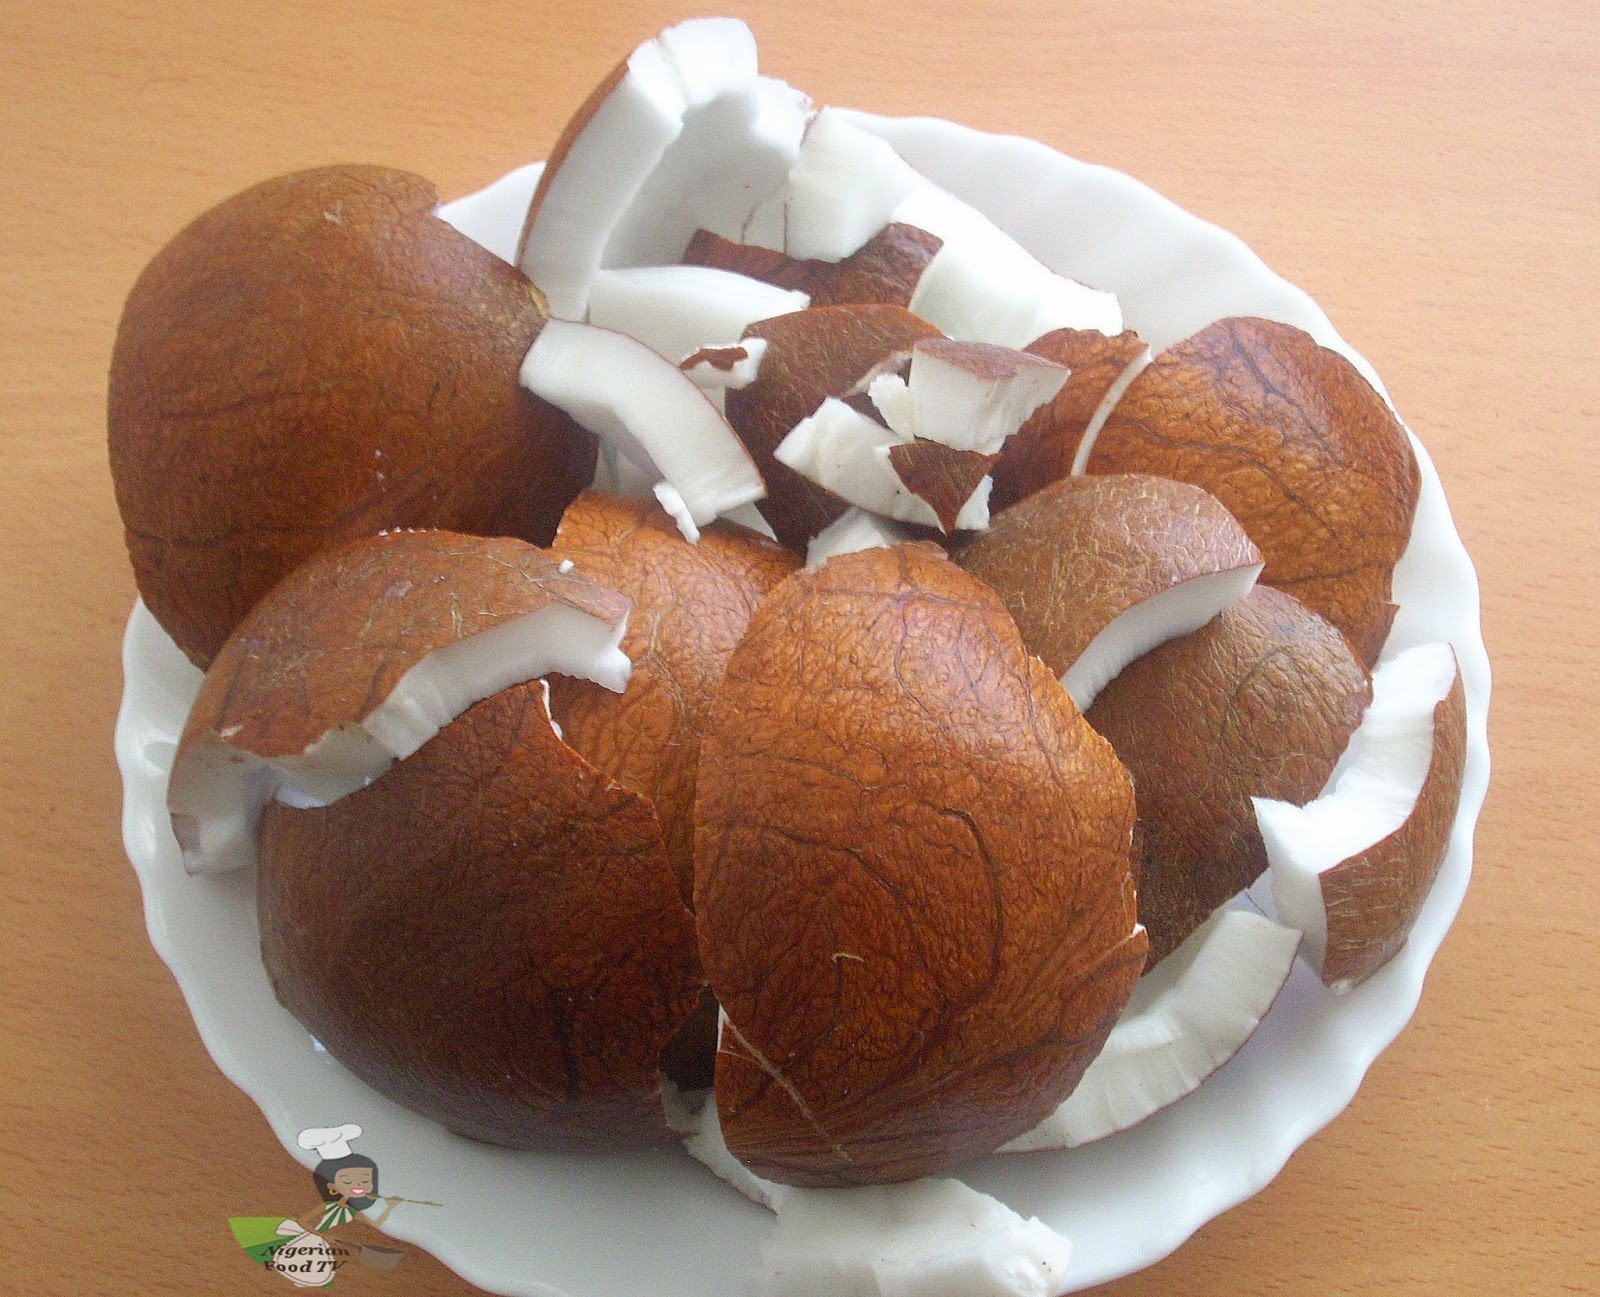 How To Extract Coconut Milkhomemade Coconut Milk(with And Without A  Blender) How To